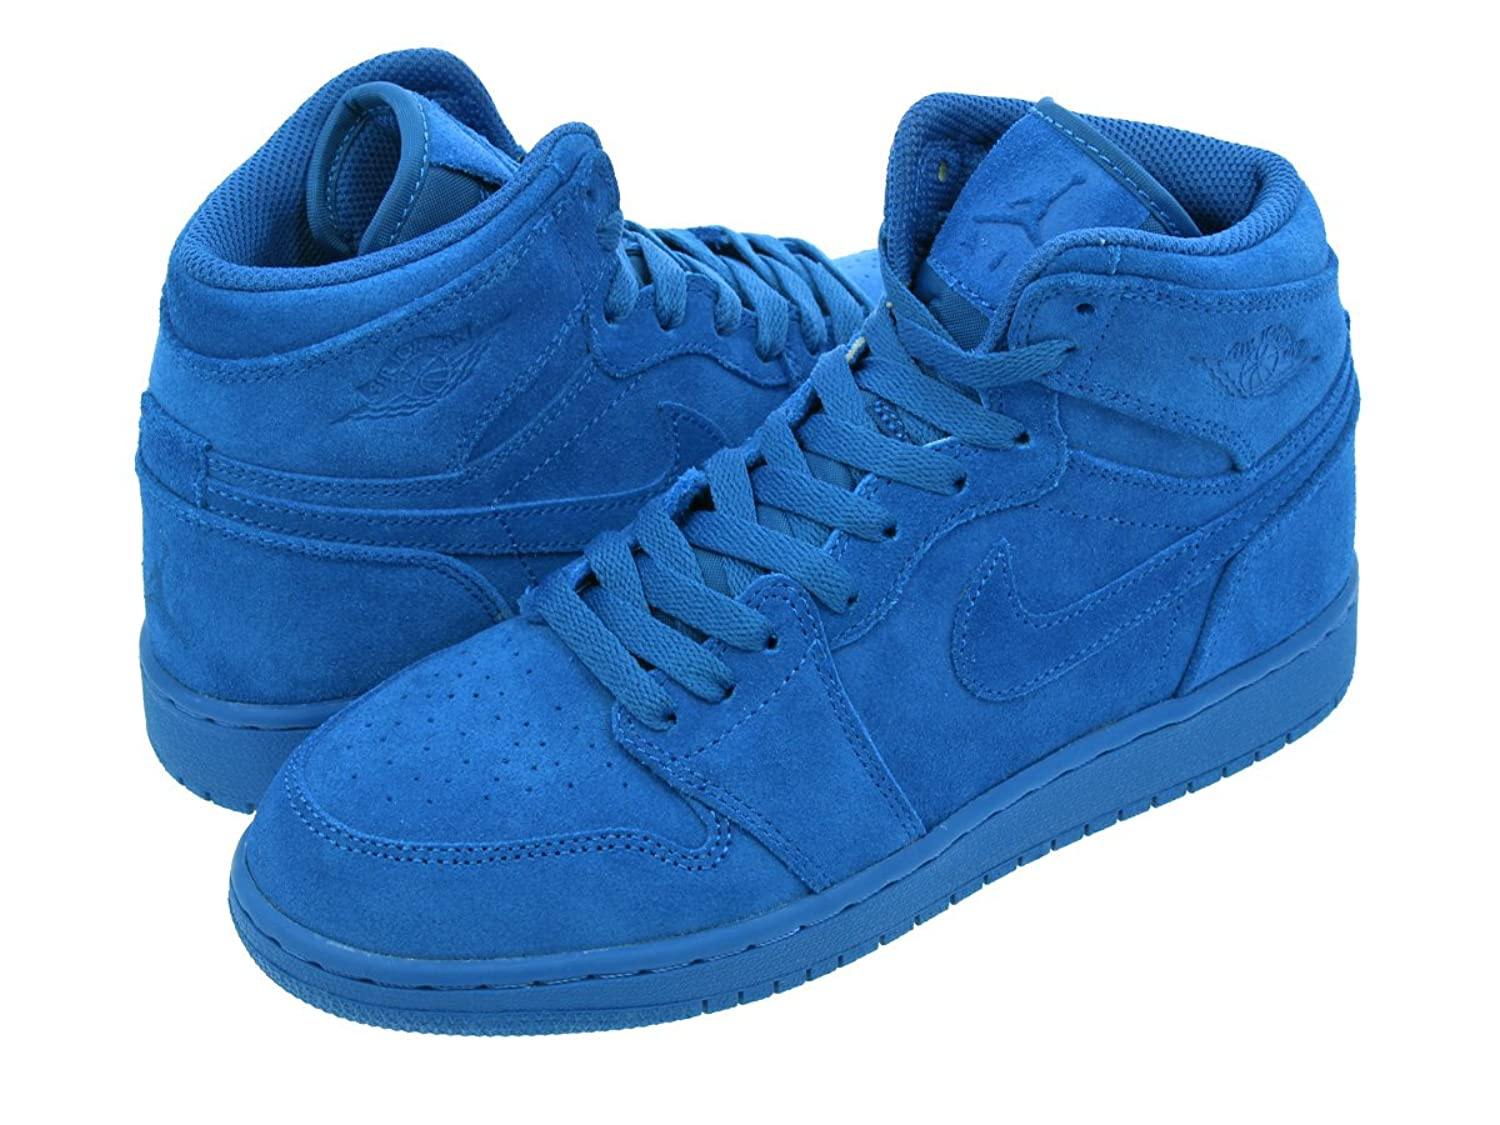 [ナイキ] AIR JORDAN 1 RETRO HIGH BG TEAM ROYAL/TEAM ROYAL 705300-404 【BLUE SUEDE】【レディースモデル】 [並行輸入品]